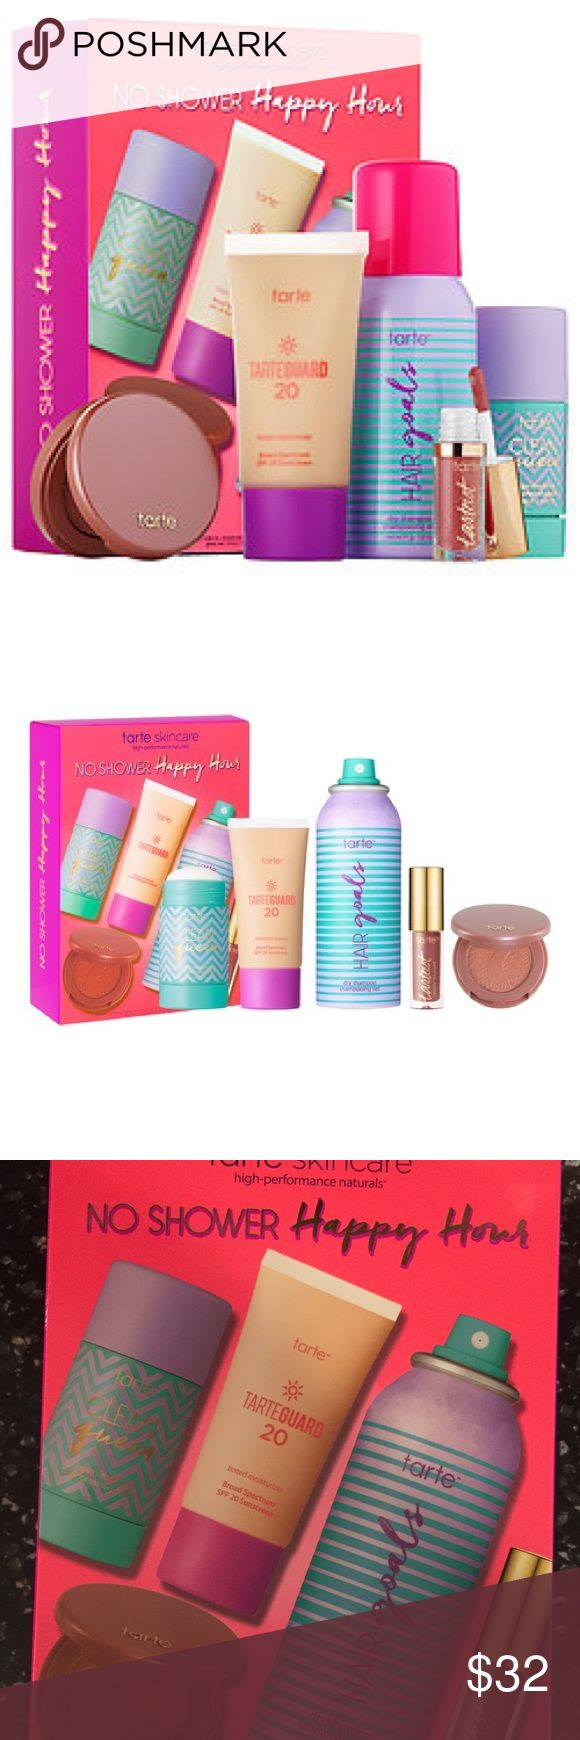 Tarte No Shower Happy Hour Boxed Set Travel set includes: * travel size clean queen vegan deodorant * travel size hair goals dry shampoo * travel size tarteguard 20 tinted moisturizer in medium * deluxe tarteist™ glossy lip paint in goals (rosy nude) * deluxe Amazonian clay 12-hour blush in insightful (peachy pink) New in Box tarte Makeup Eyeshadow